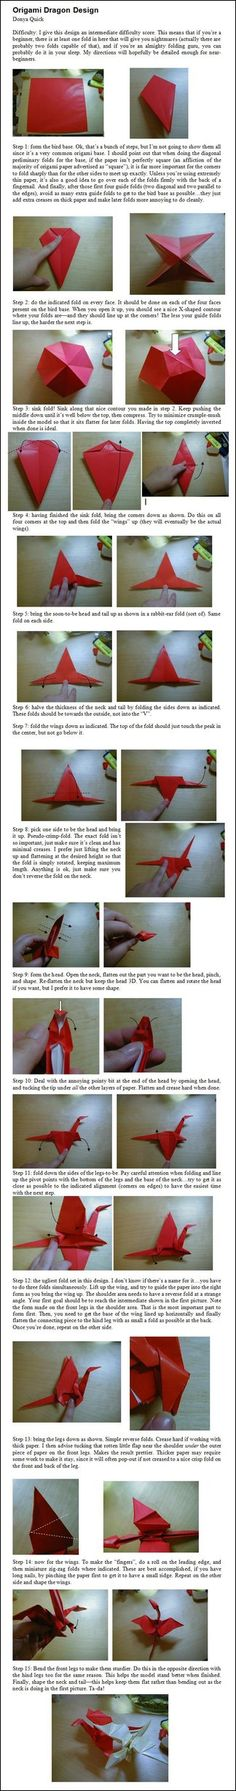 Origami Dragon - Instructions by DonyaQuick on deviantART